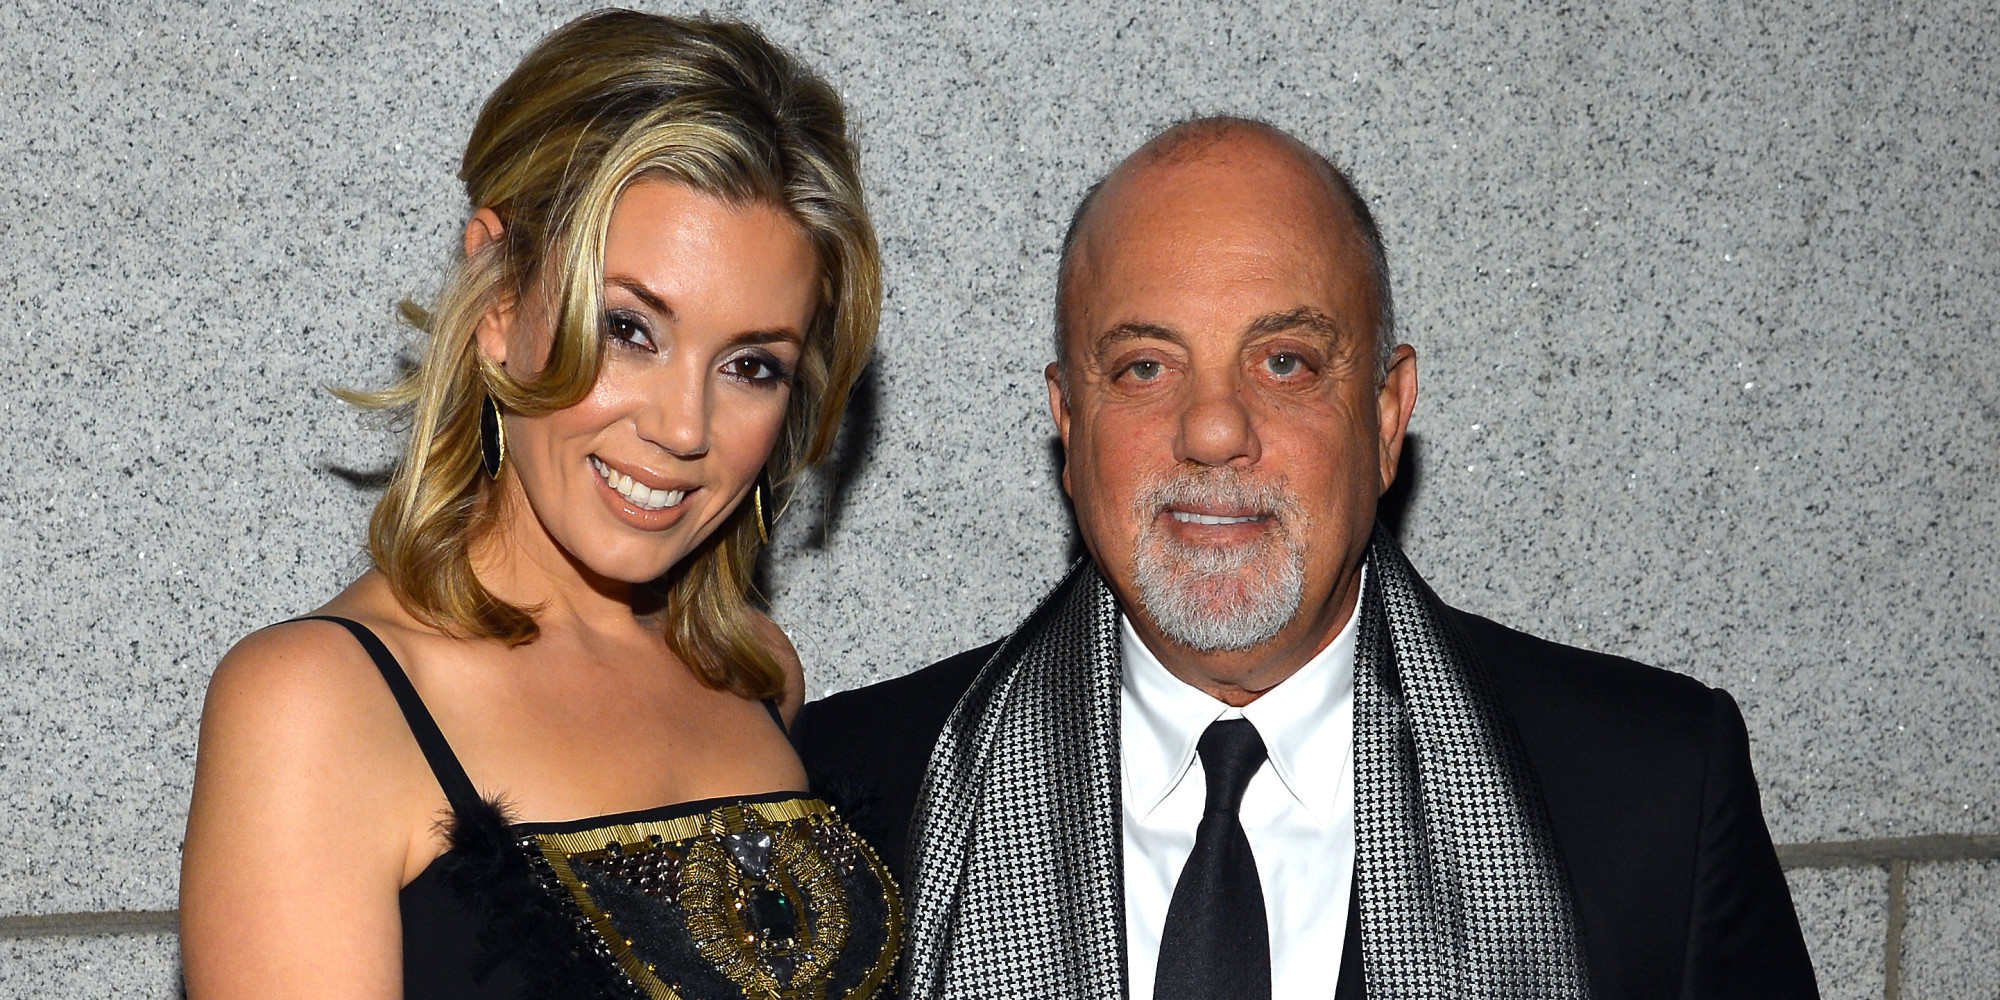 Billy Joel Marries Alexis Roderick In Surprise 4th Of July Wedding | HuffPost